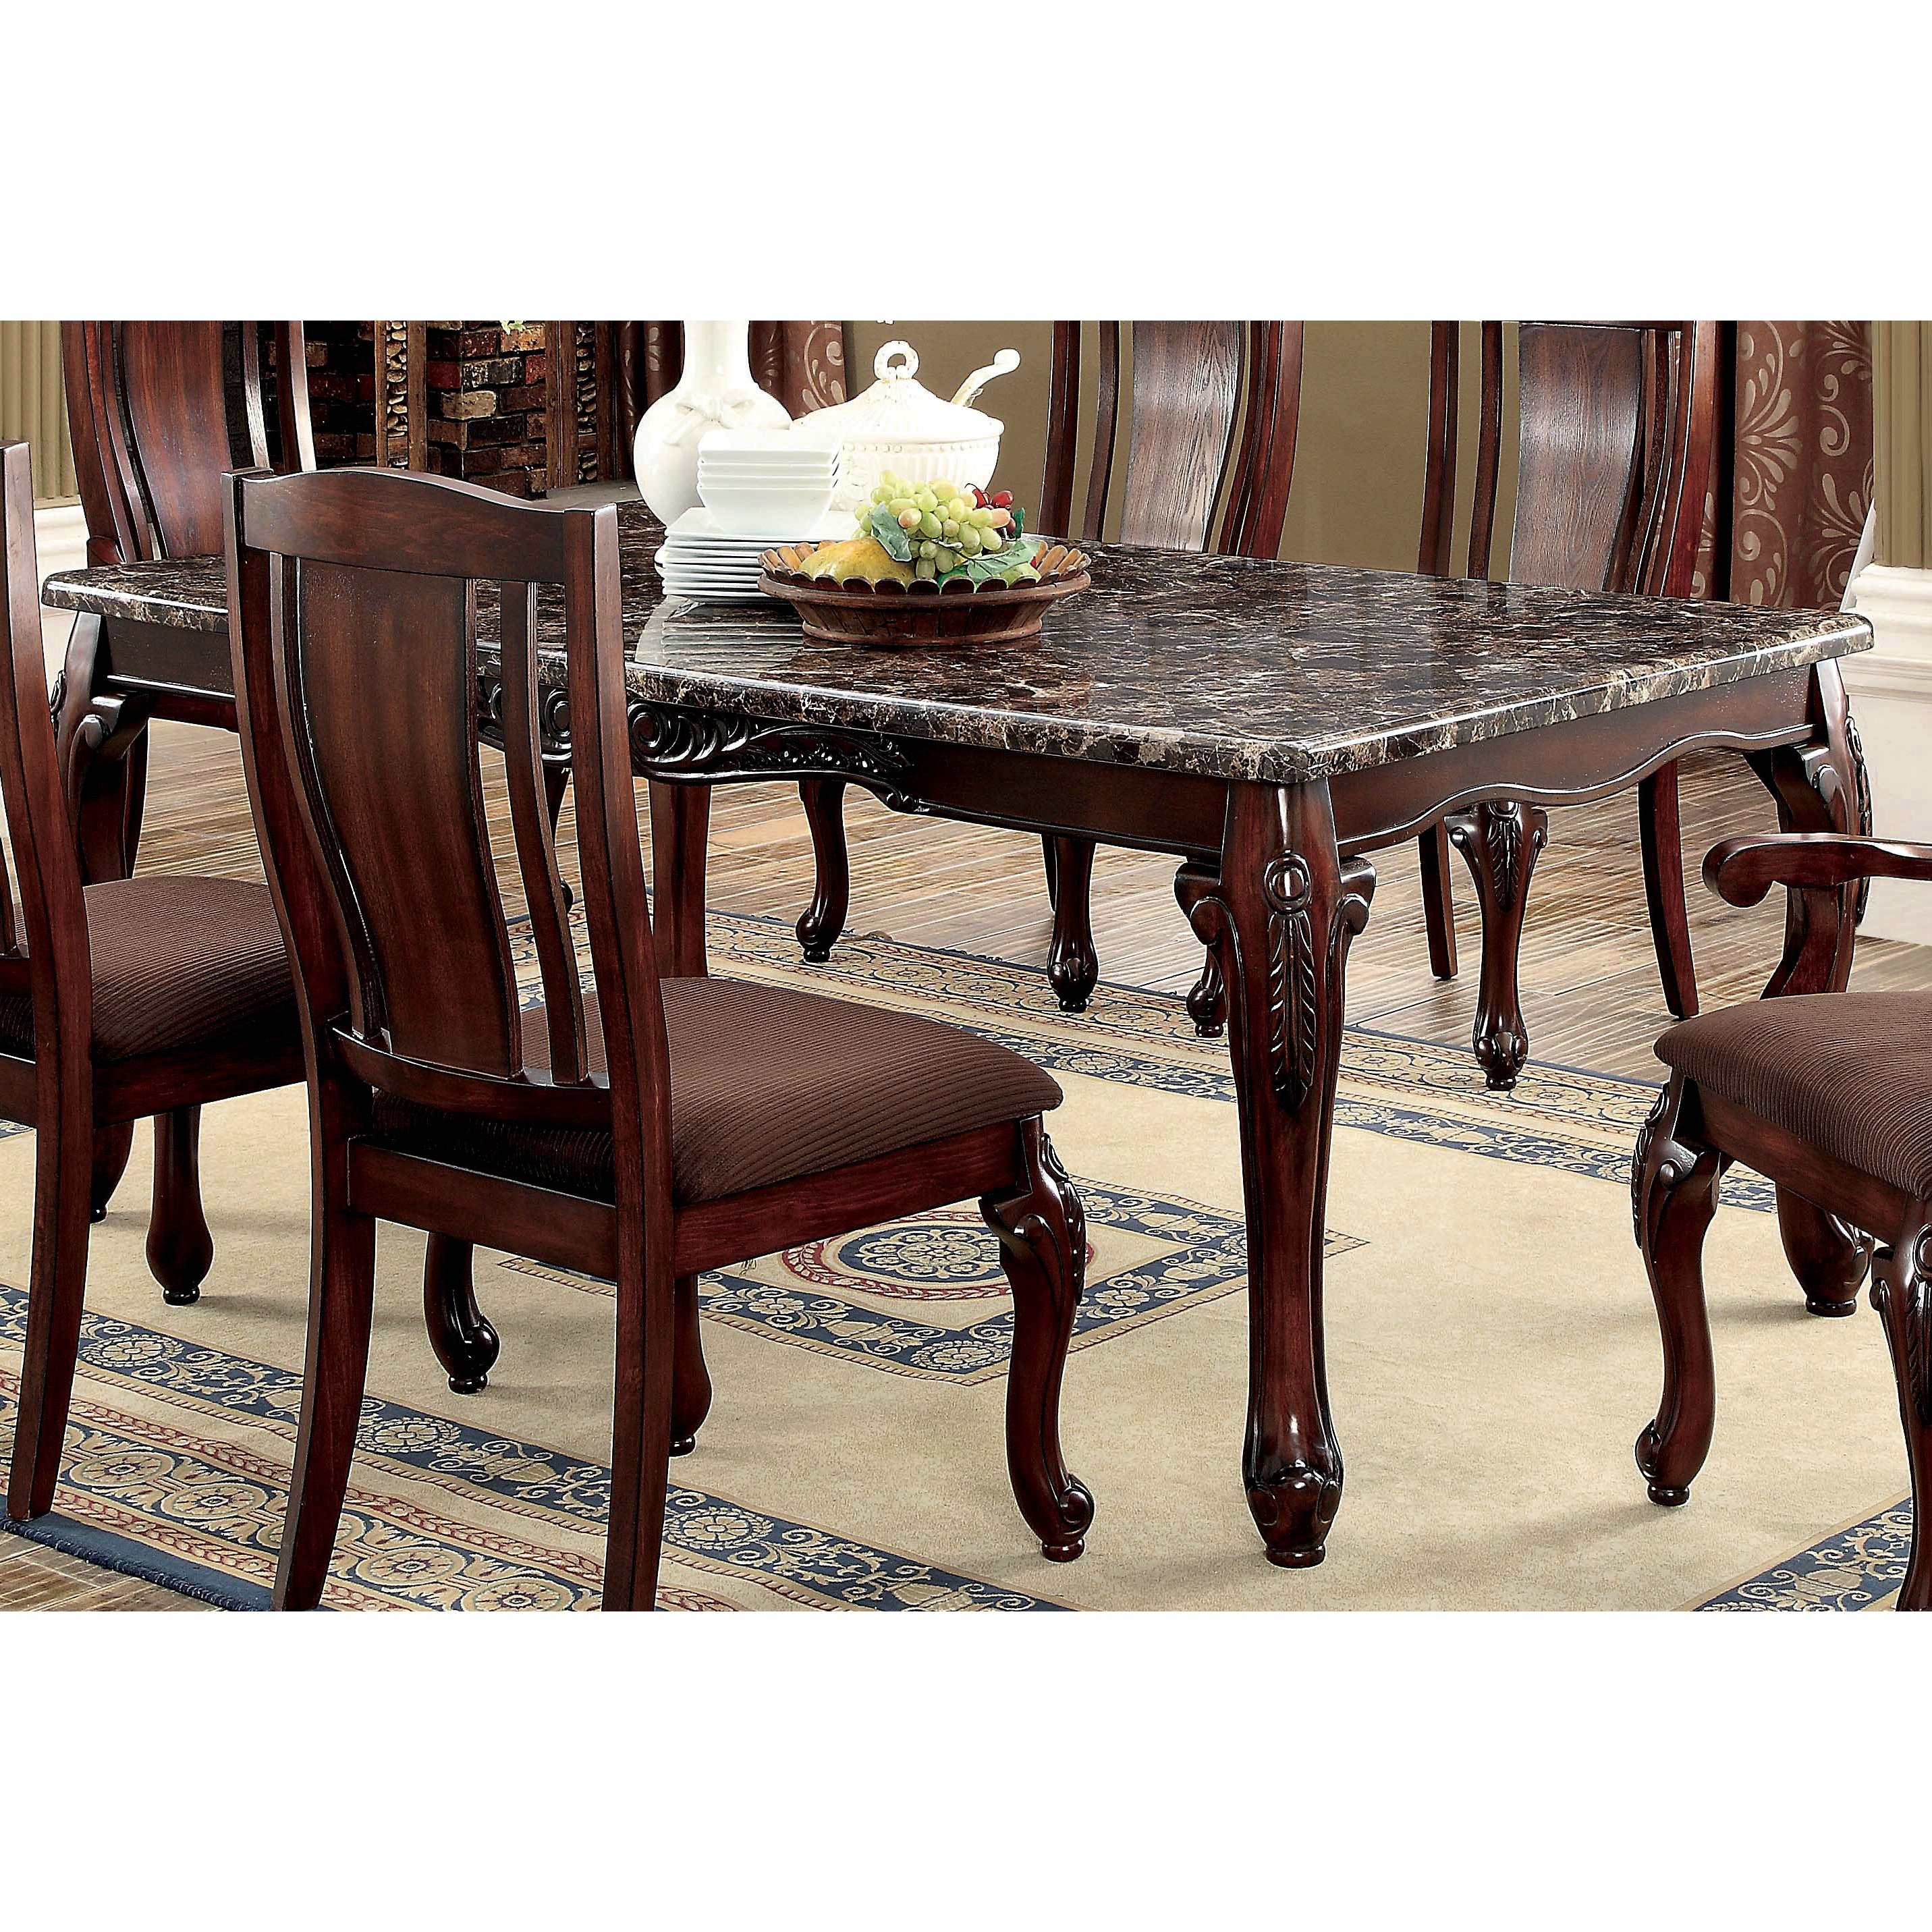 Furniture of America Hannel Traditional Floral Carved Fau...